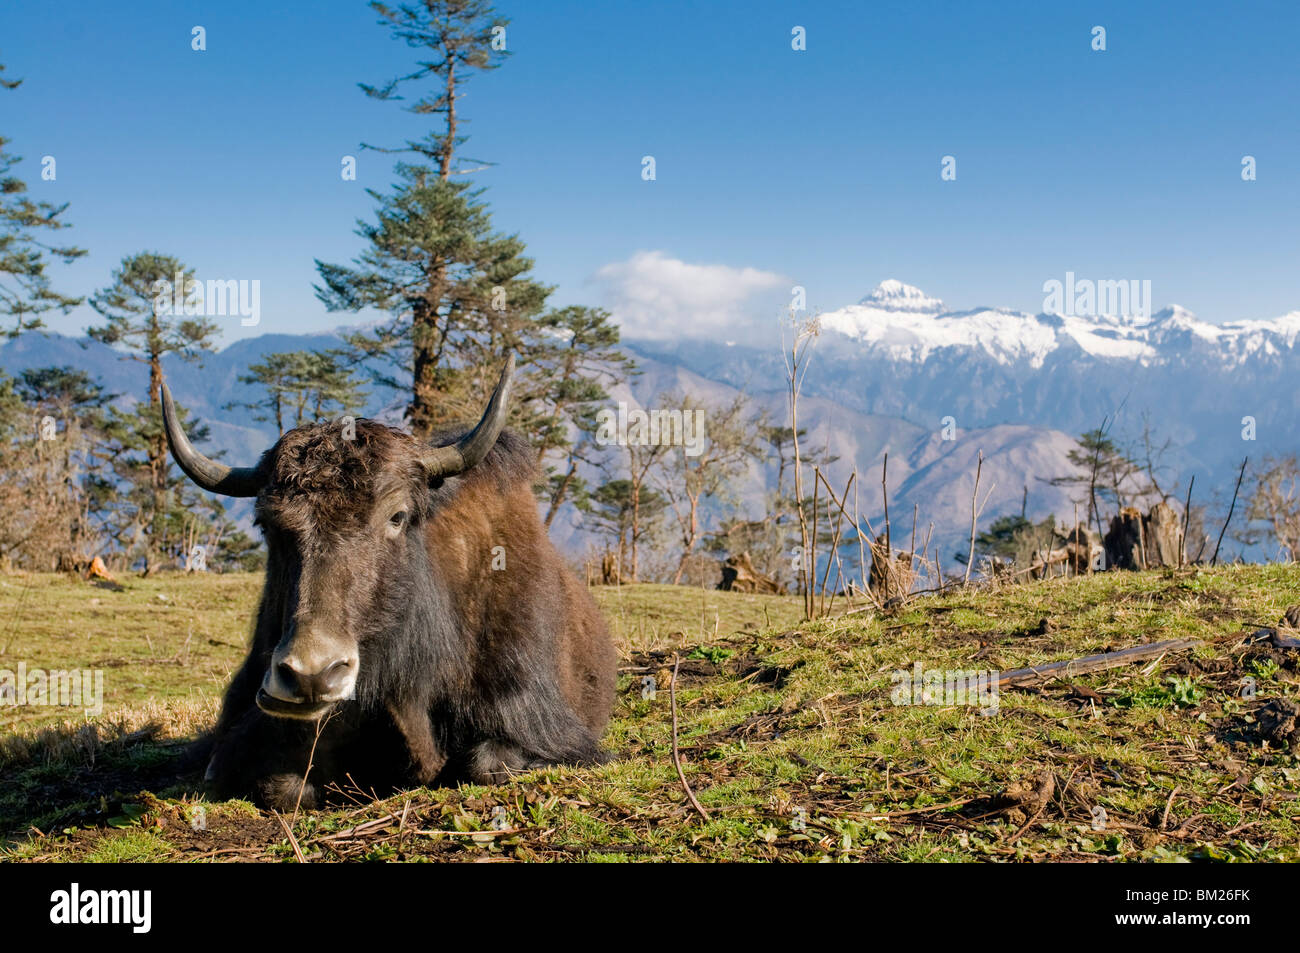 Yak grazing on top of the Pele La mountain pass with the Himalayas in the background, Bhutan - Stock Image